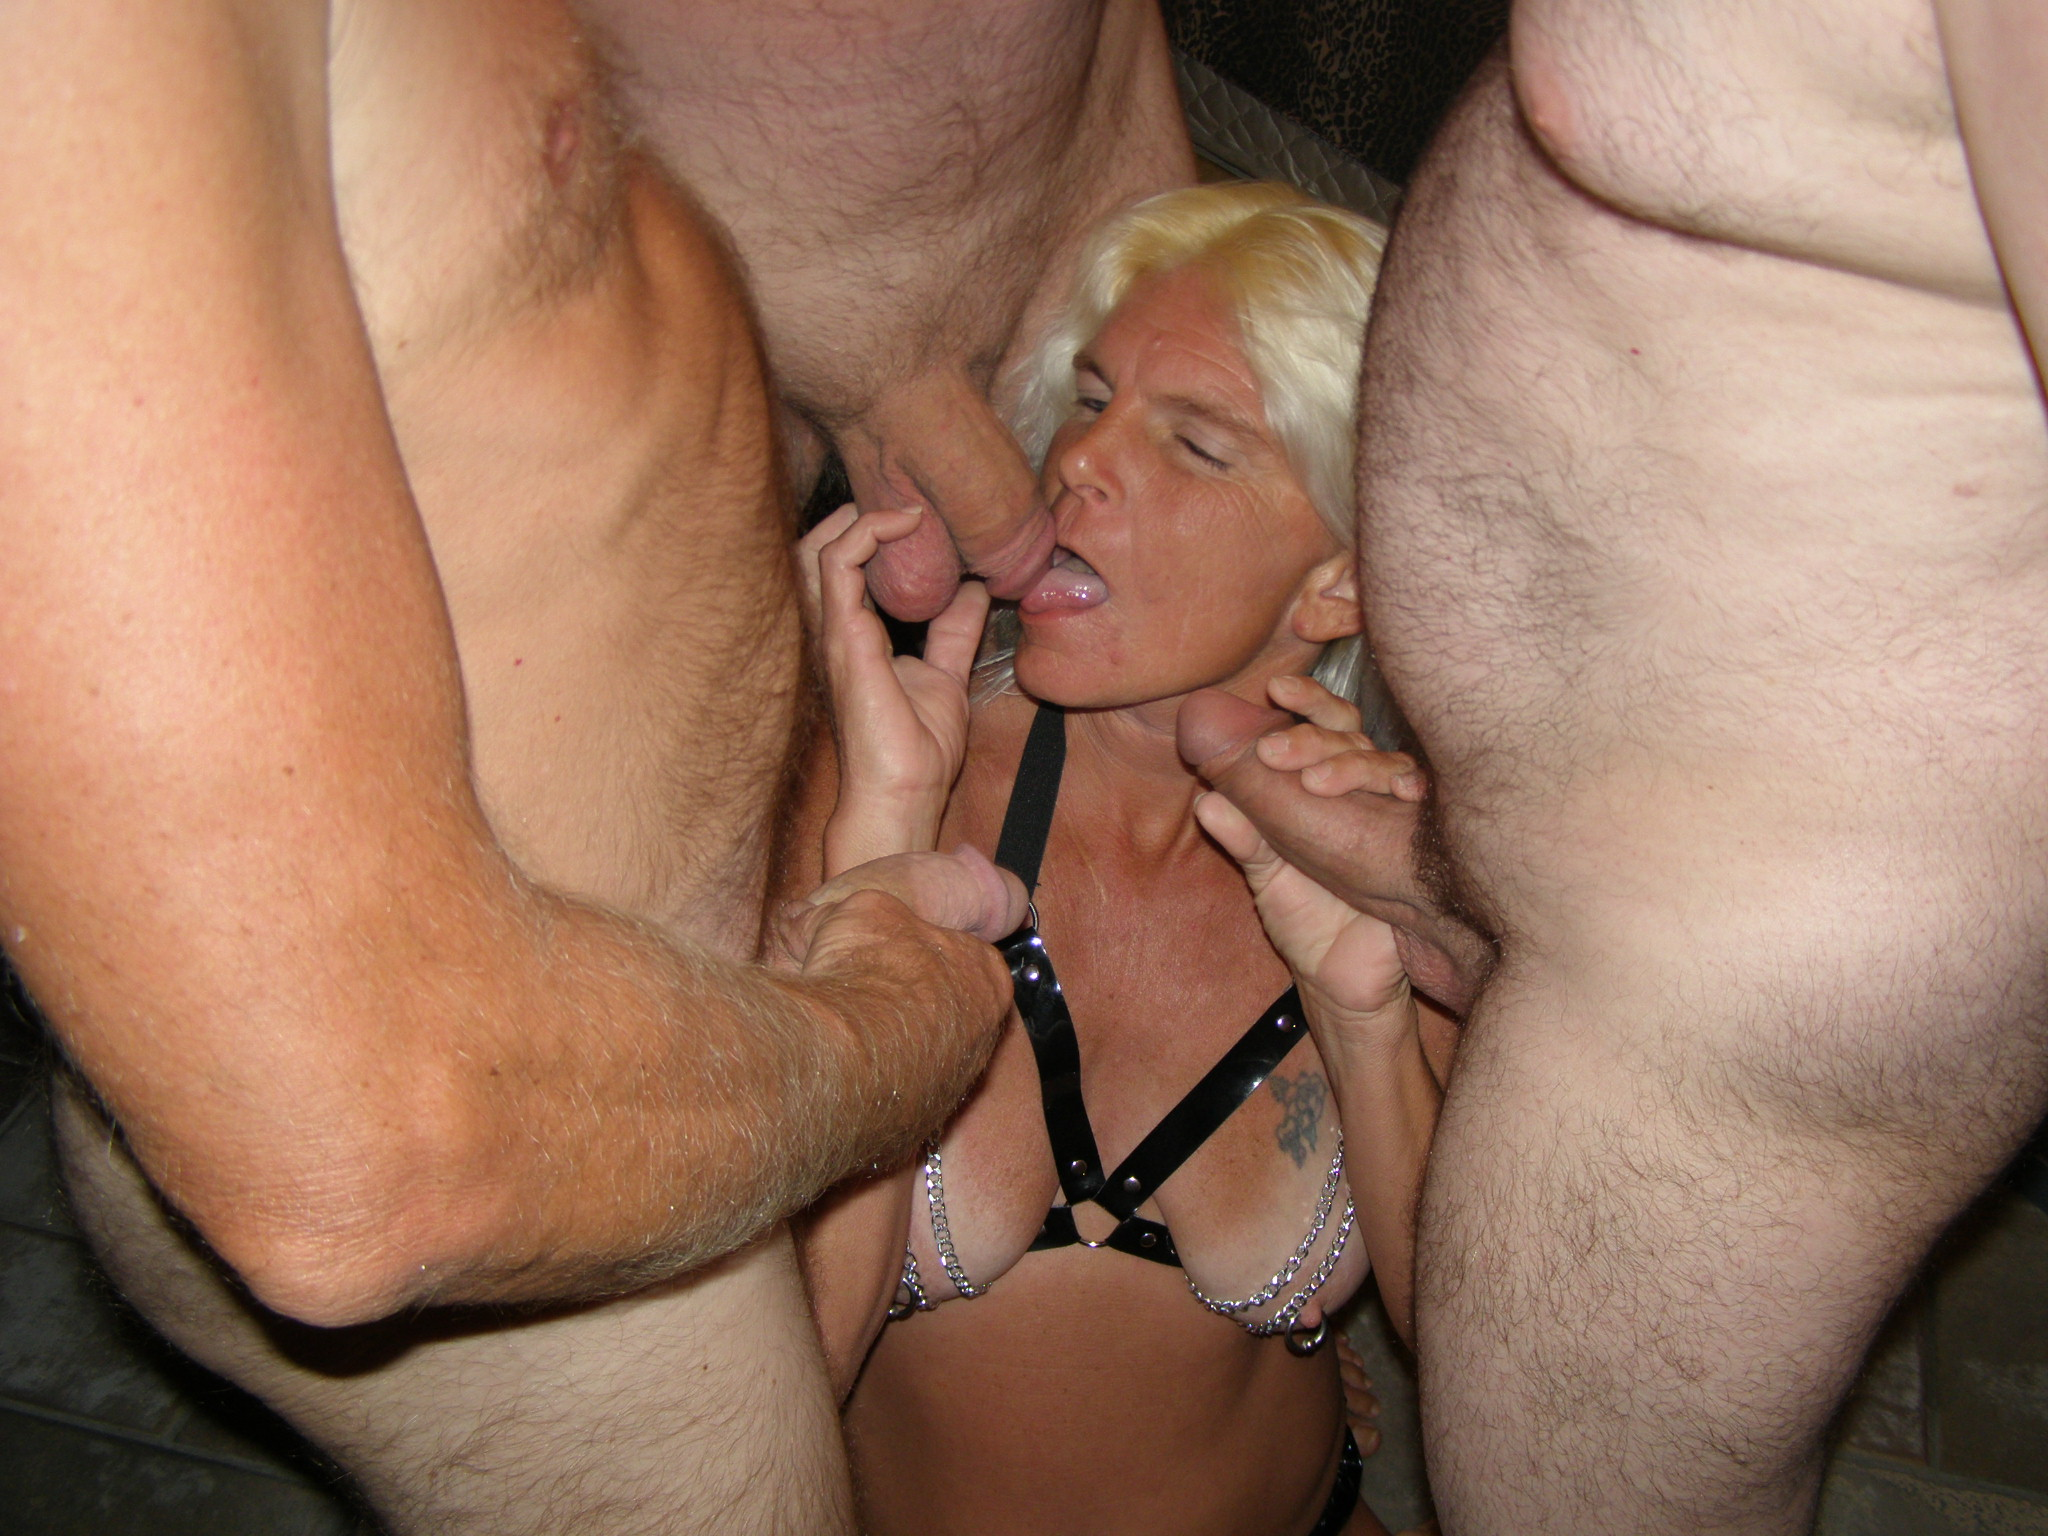 Drunk wife handjob